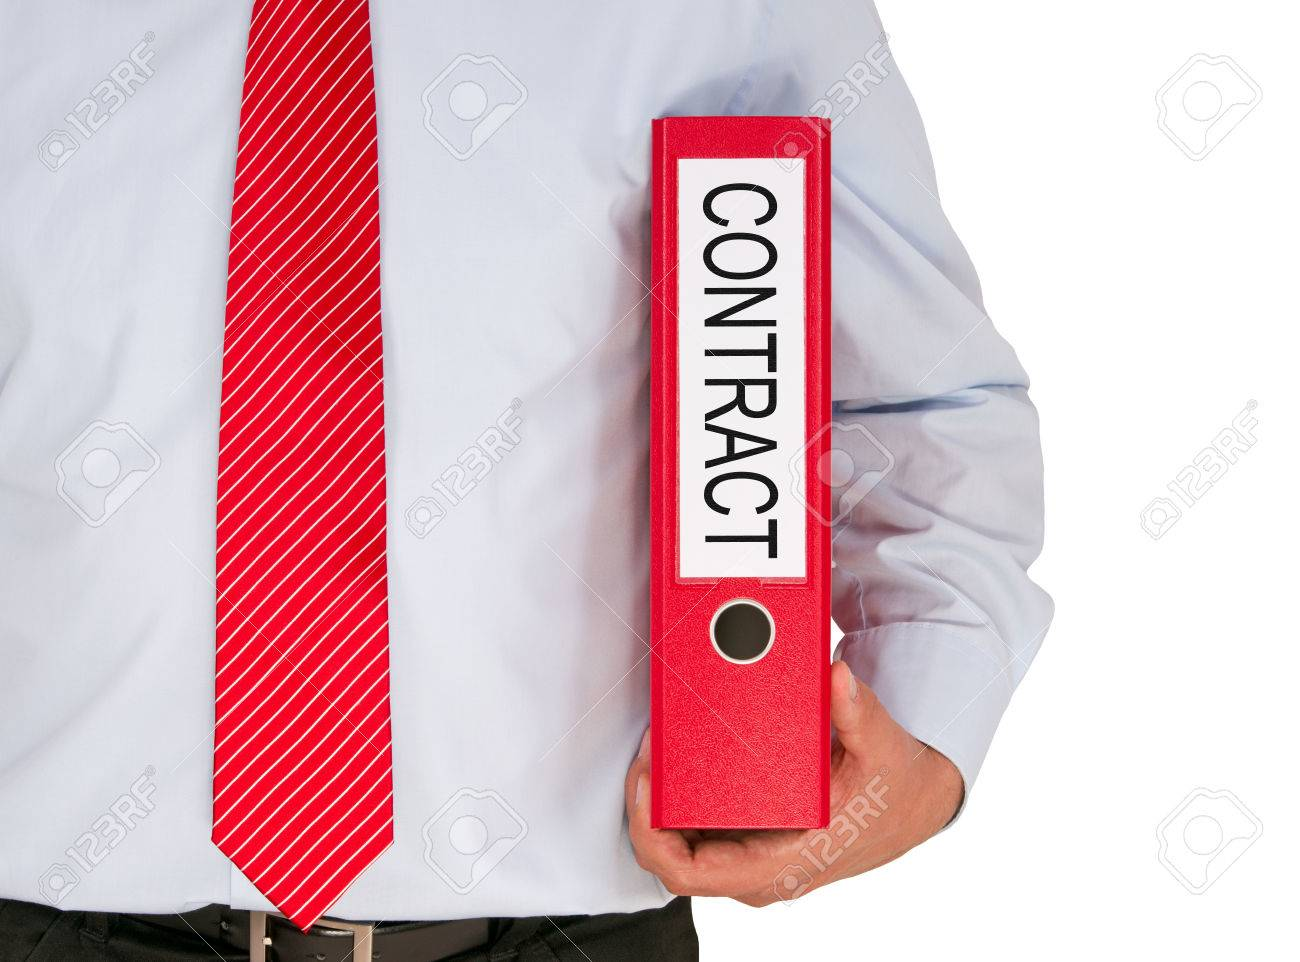 Contract Stock Photo - 22477301